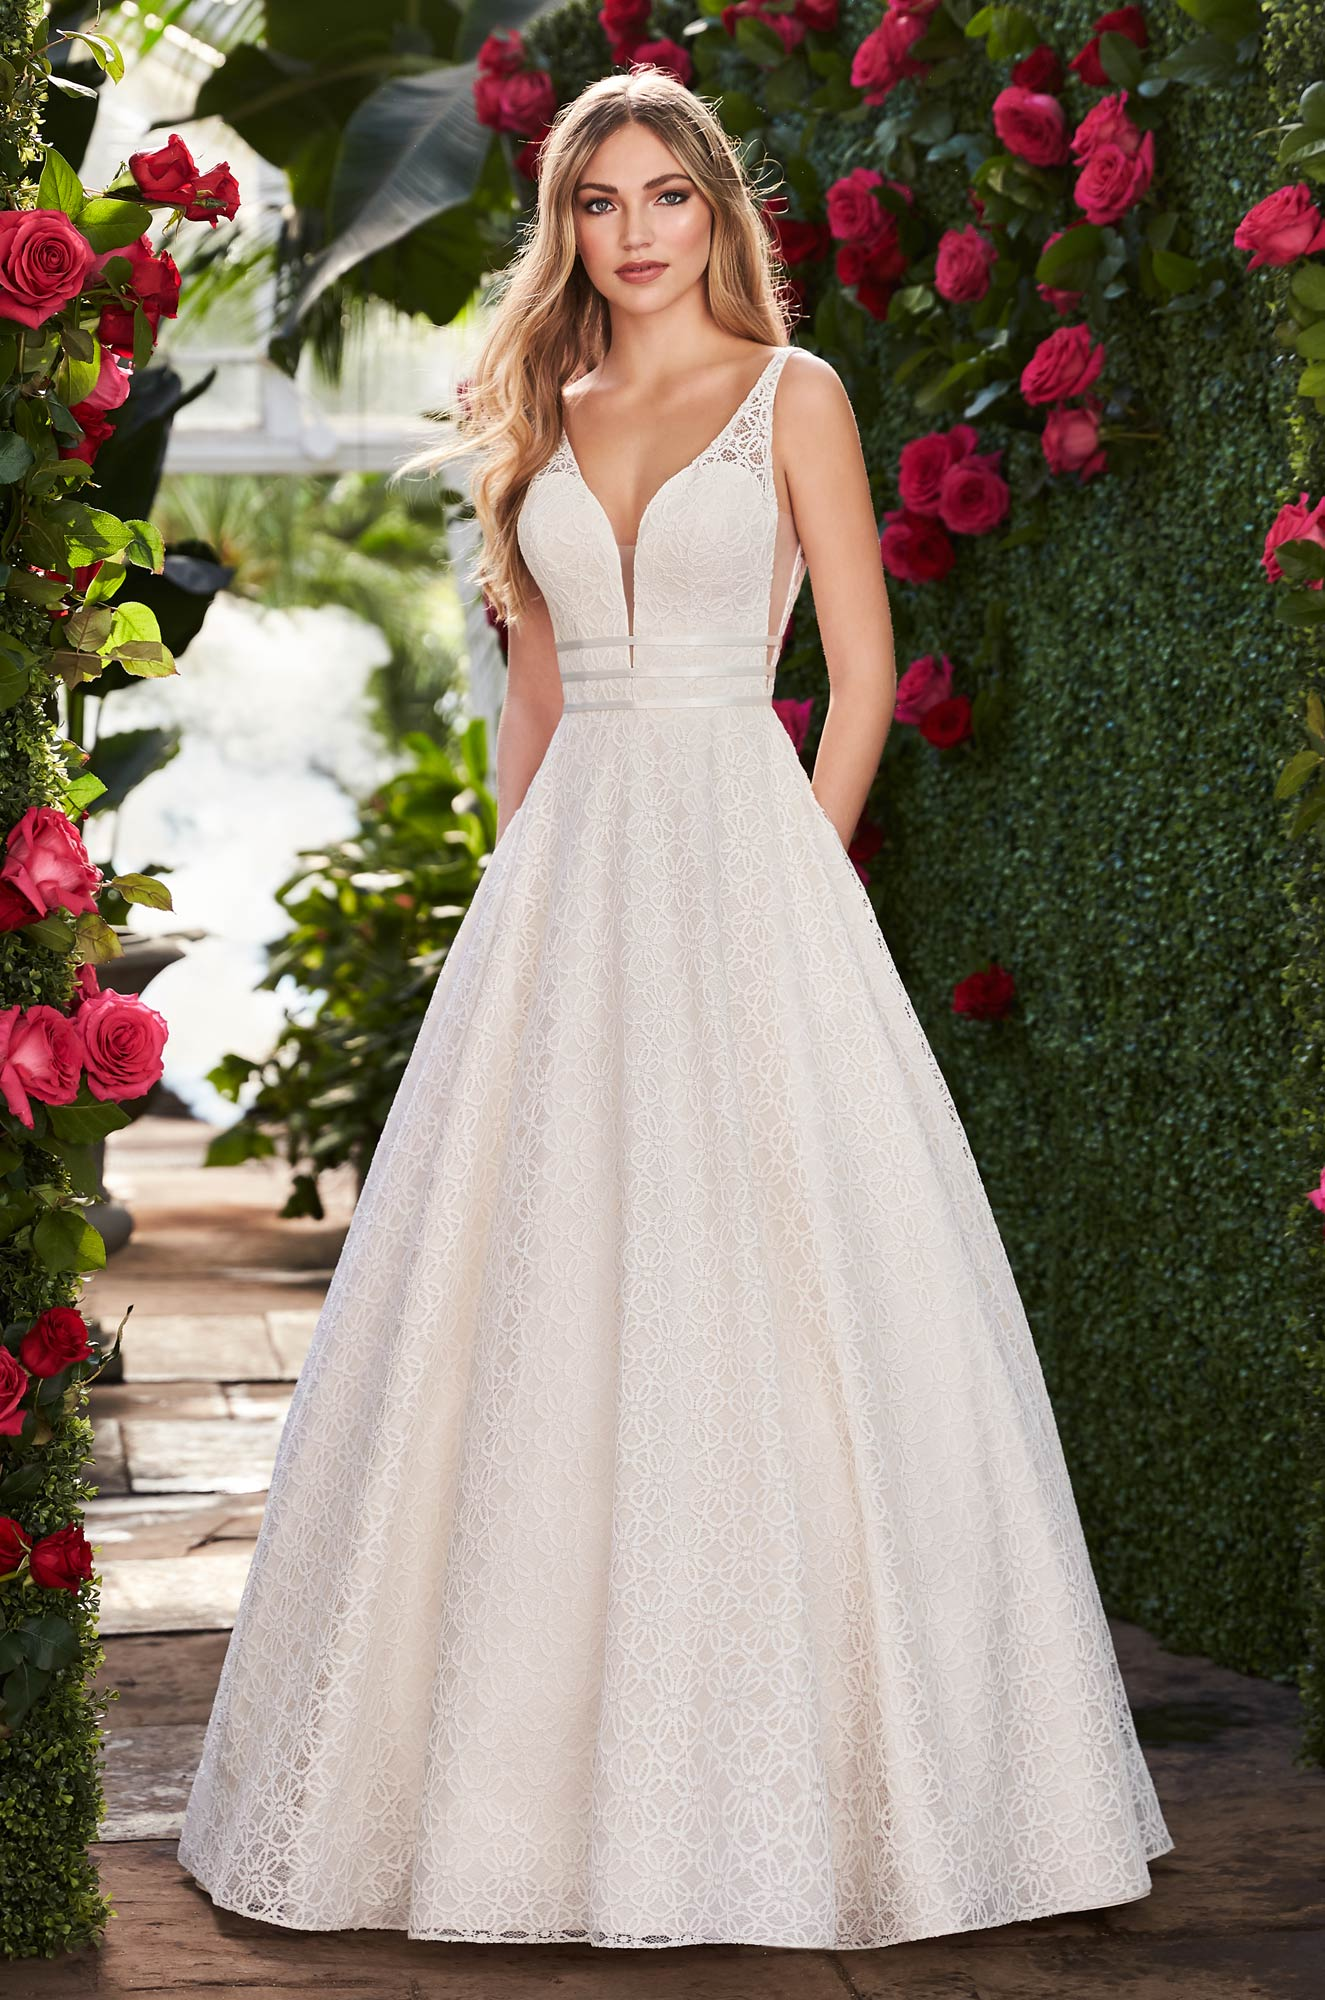 Ball Gown Wedding Dress With Pockets – Style #2273 | Mikaella Bridal